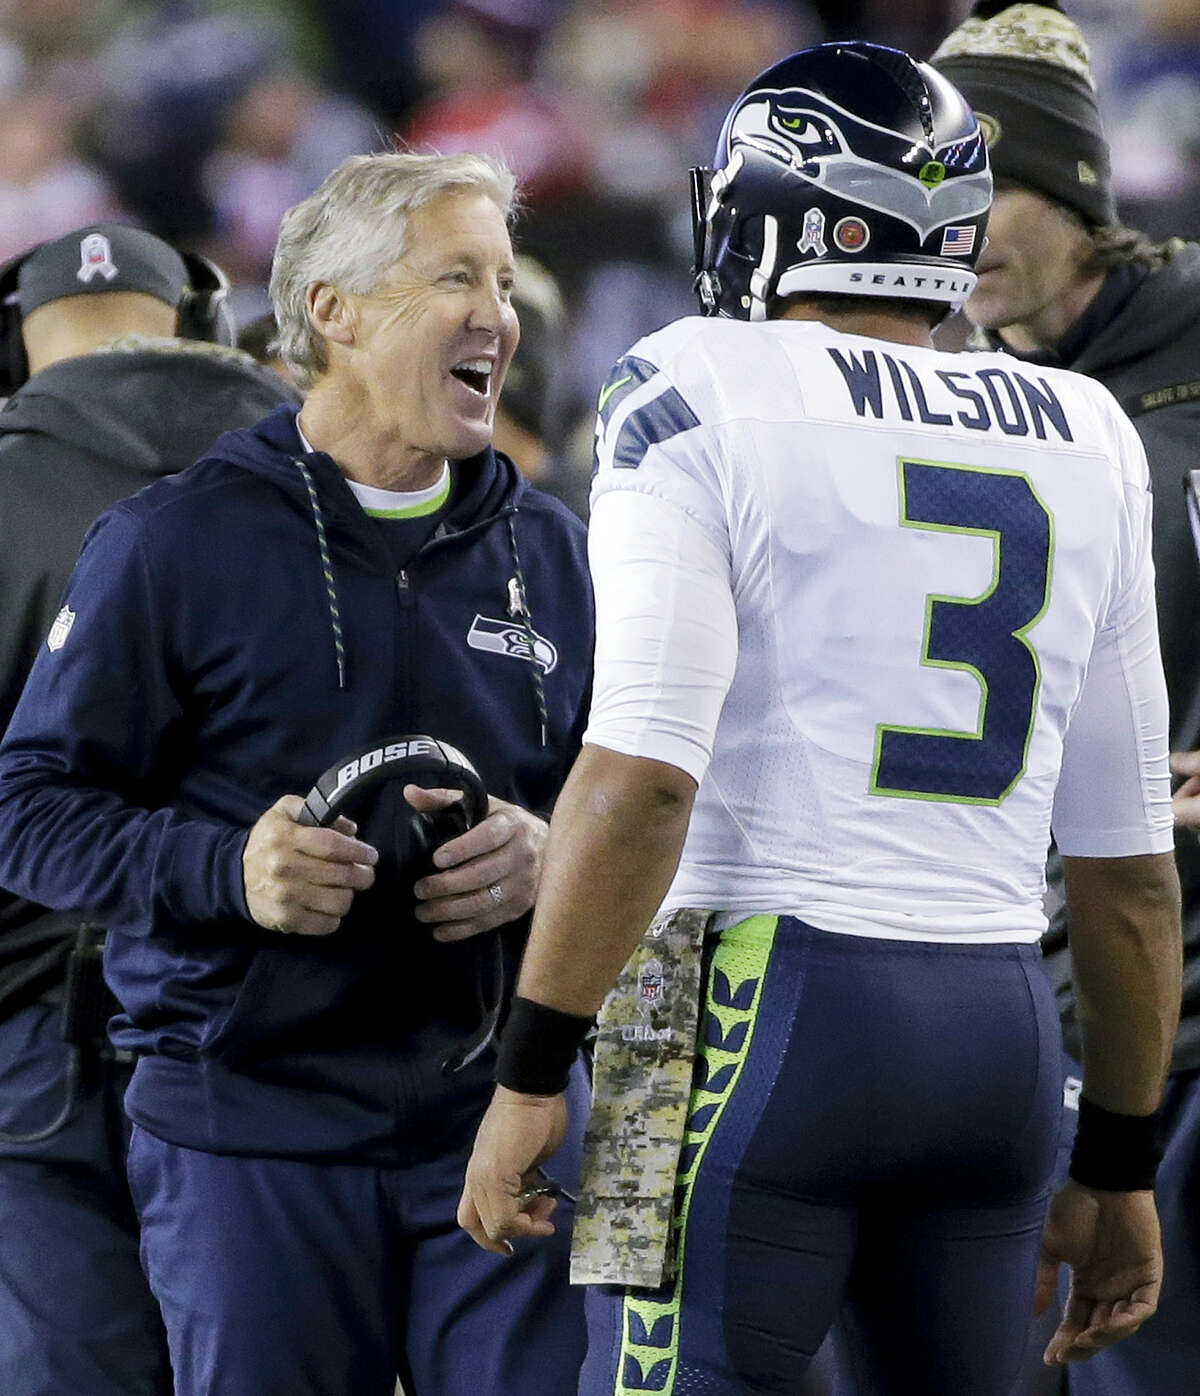 Seattle Seahawks head coach Pete Carroll, left, and quarterback Russell Wilson celebrate Wilson's touchdown pass to Doug Baldwin during the first half of an NFL football game against the New England Patriots on Sunday, Nov. 13, 2016 in Foxborough, Mass.